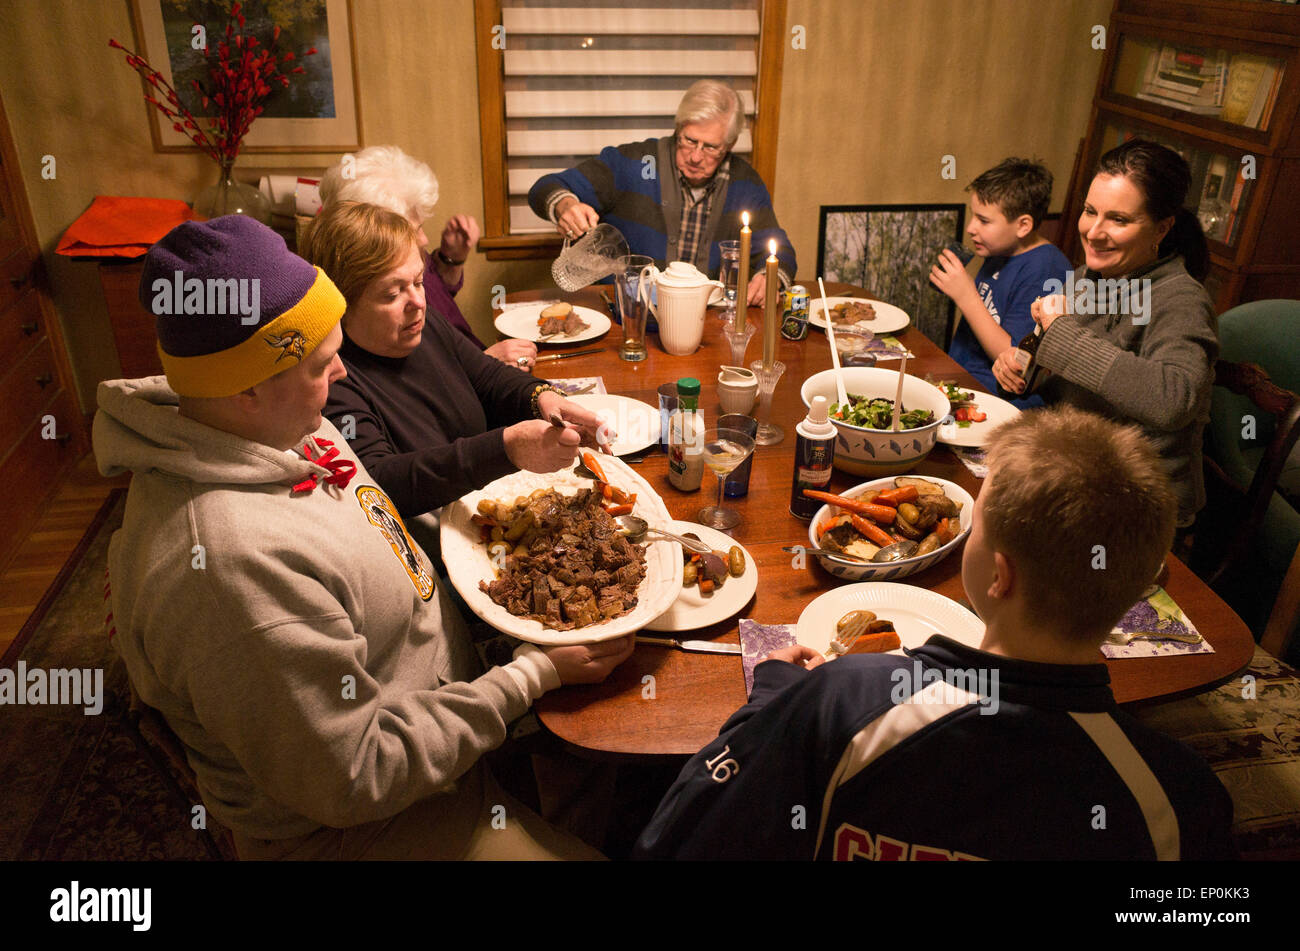 Family of three generations enjoying a hearty beef and vegetable dinner. St Paul Minnesota MN USA - Stock Image